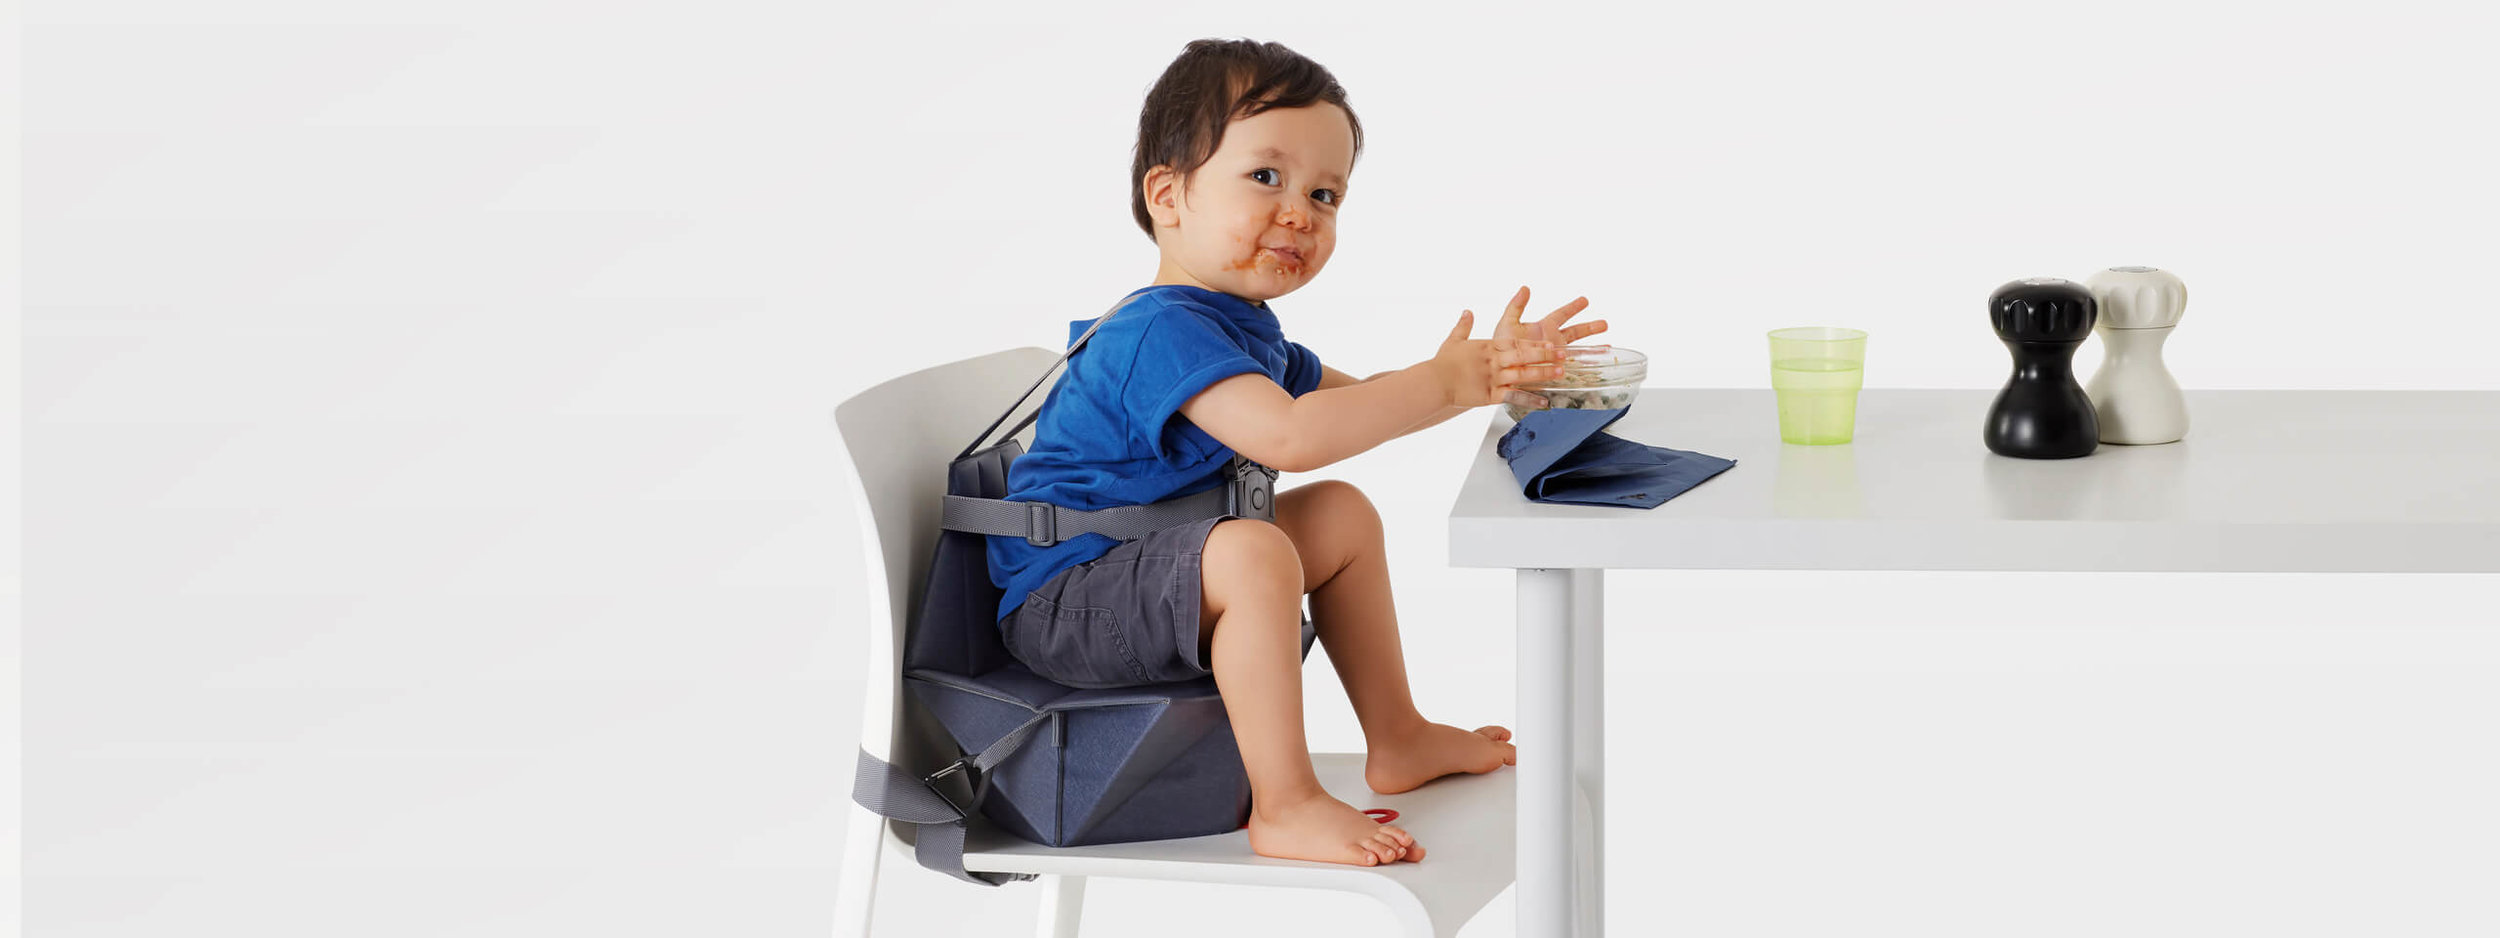 Bombol-Pop-Up-foldable-booster-seat-messy-eating-kid.jpg